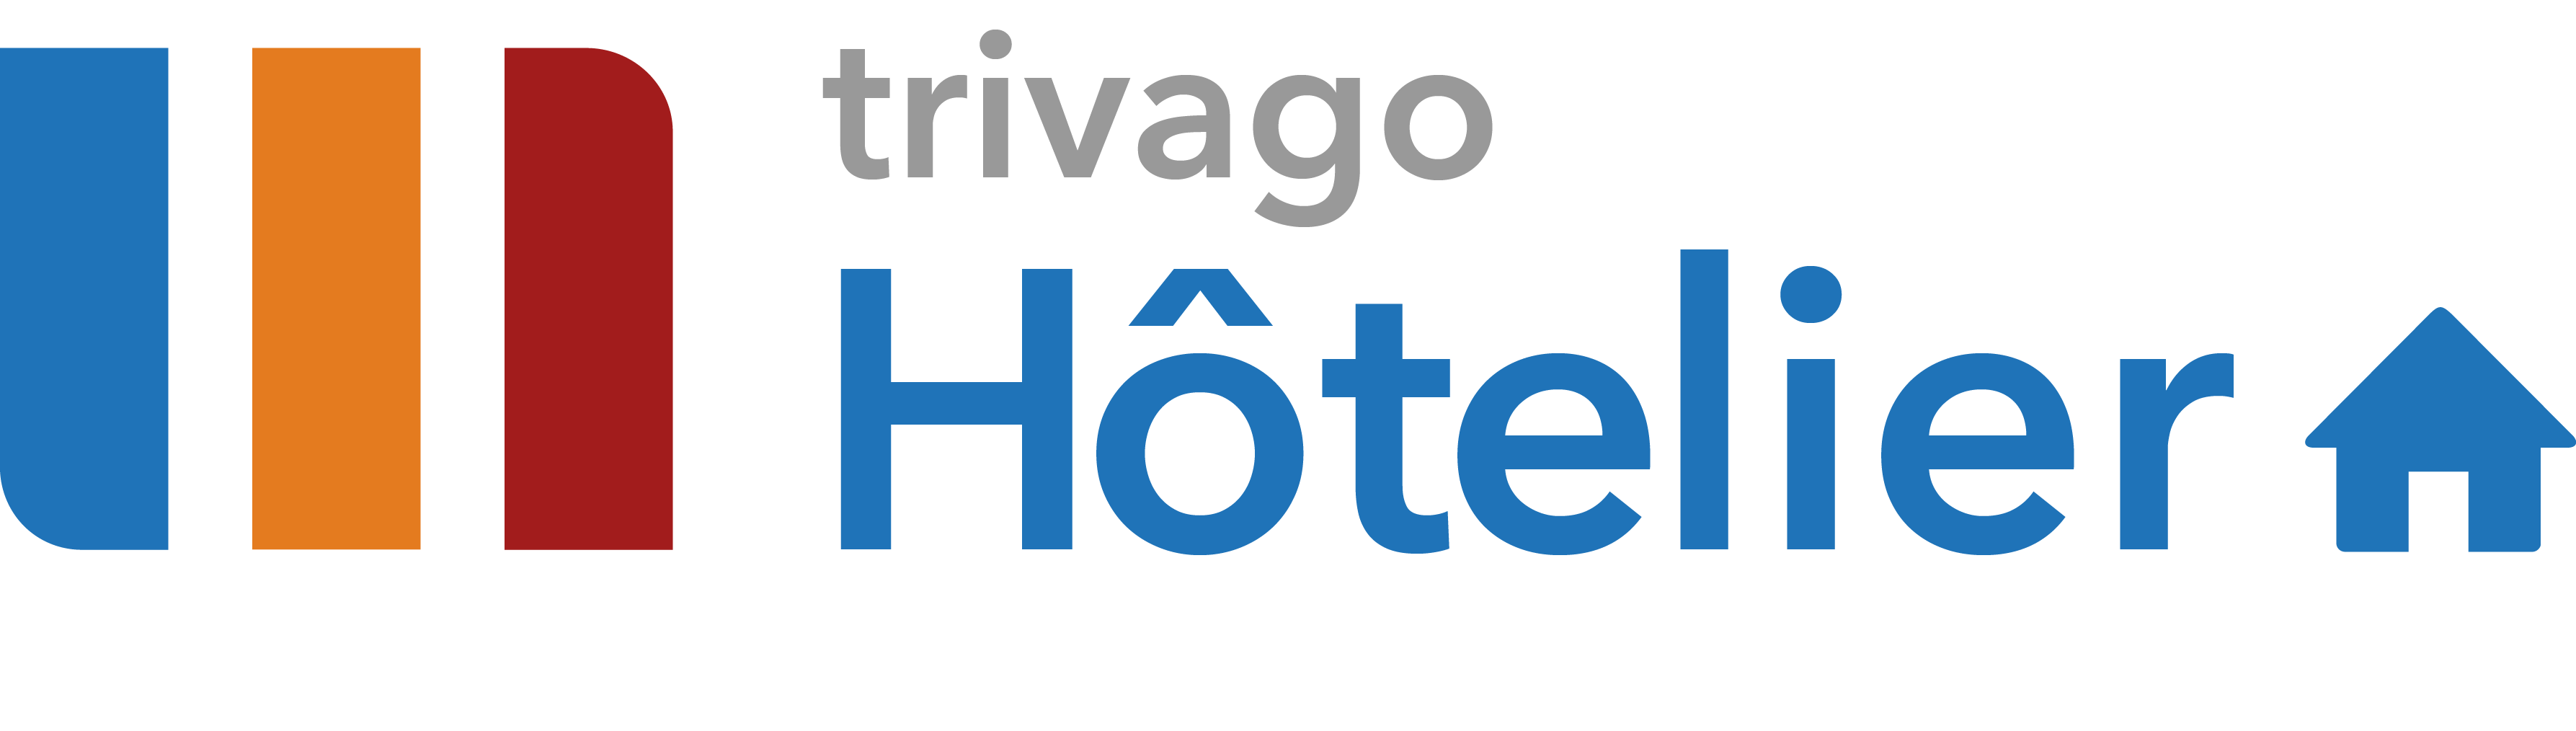 File:Trivago Hotelier Logo.png - Trivago PNG